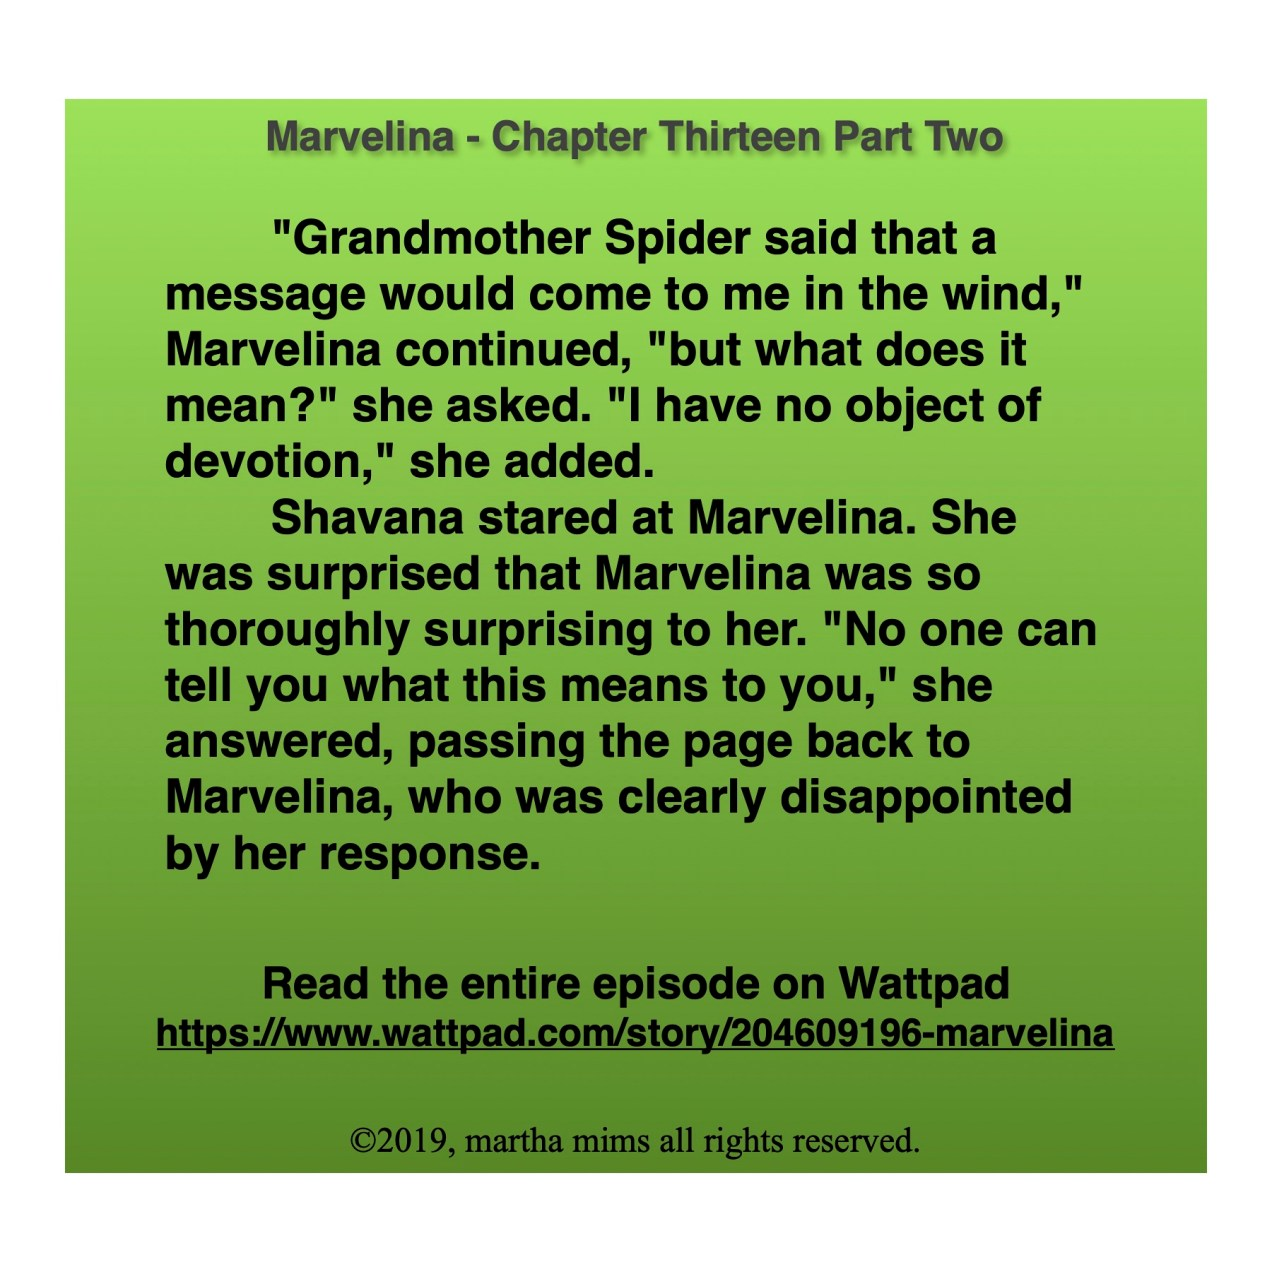 """""""Grandmother Spider said that a message would come to me in the wind,"""" Marvelina continued, """"but what does it mean?"""" she asked. """"I have no object of devotion,"""" she added. Shavana stared at Marvelina. She was surprised that Marvelina was so thoroughly surprising to her. """"No one can tell you what this means to you,"""" she answered, passing the page back to Marvelina, who was clearly disappointed by her response."""